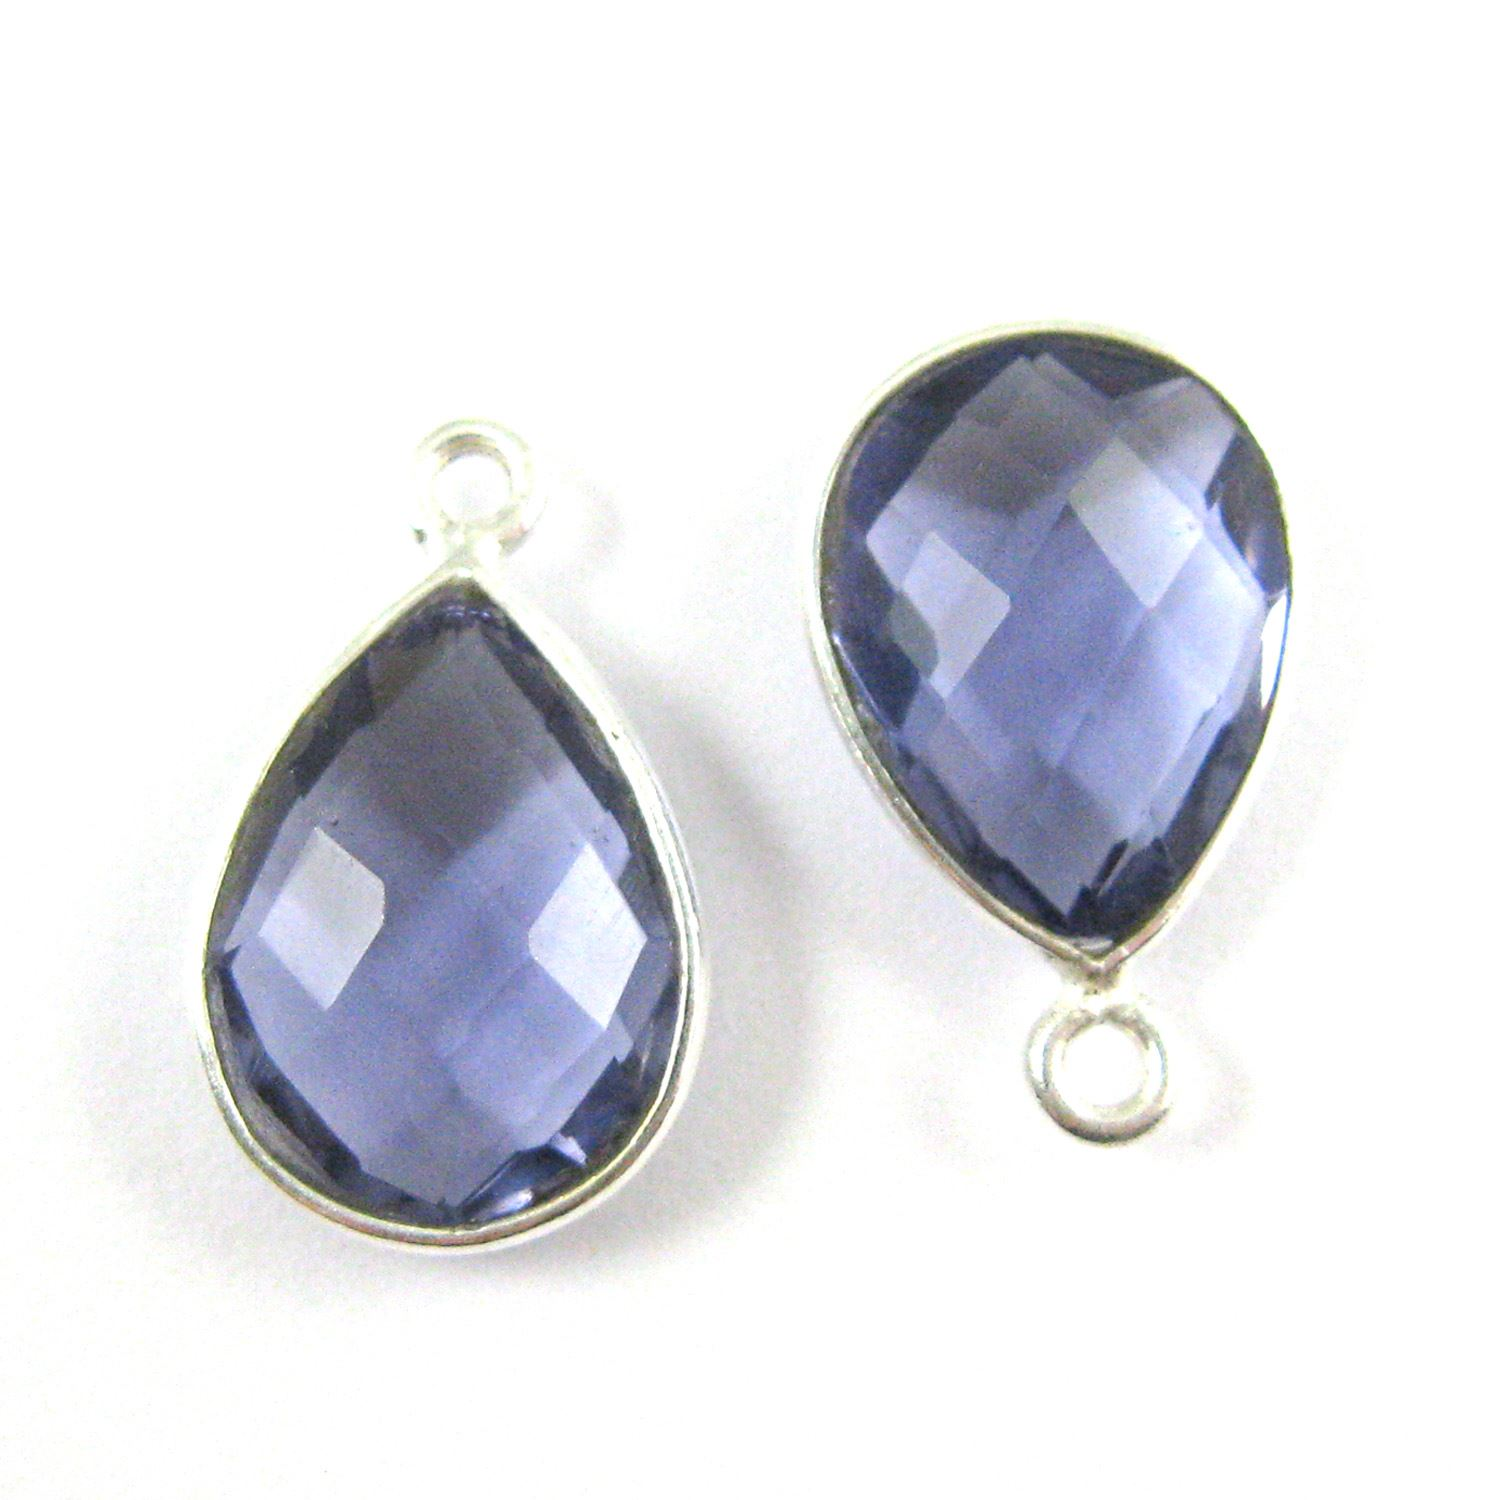 Bezel Gemstone Pendant -Sterling Silver Gem- 10x14mm Faceted Small Teardop Shape - Iolite Quartz  (sold per 2 pieces)